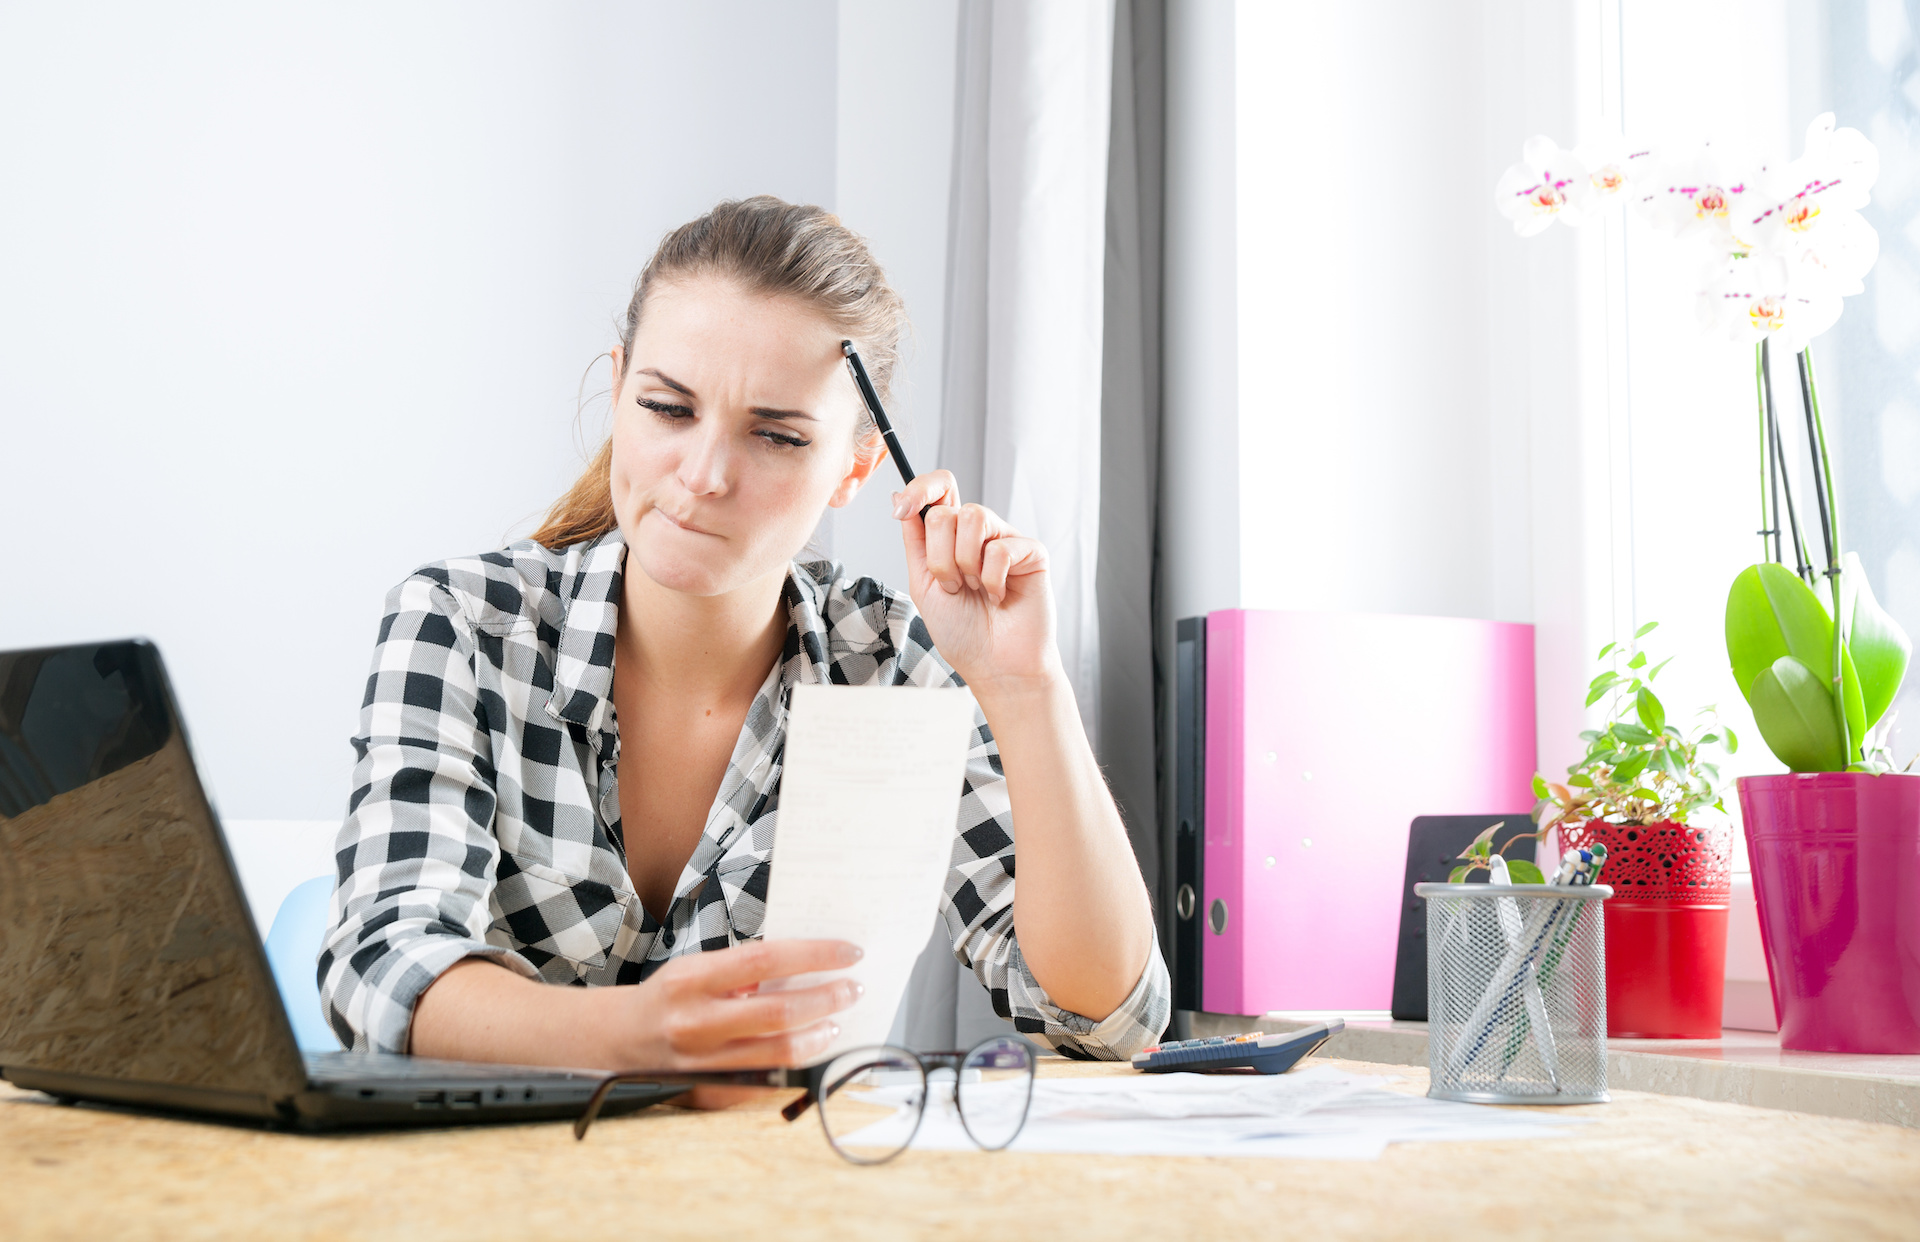 What is the cost? Young woman doing cost accounting